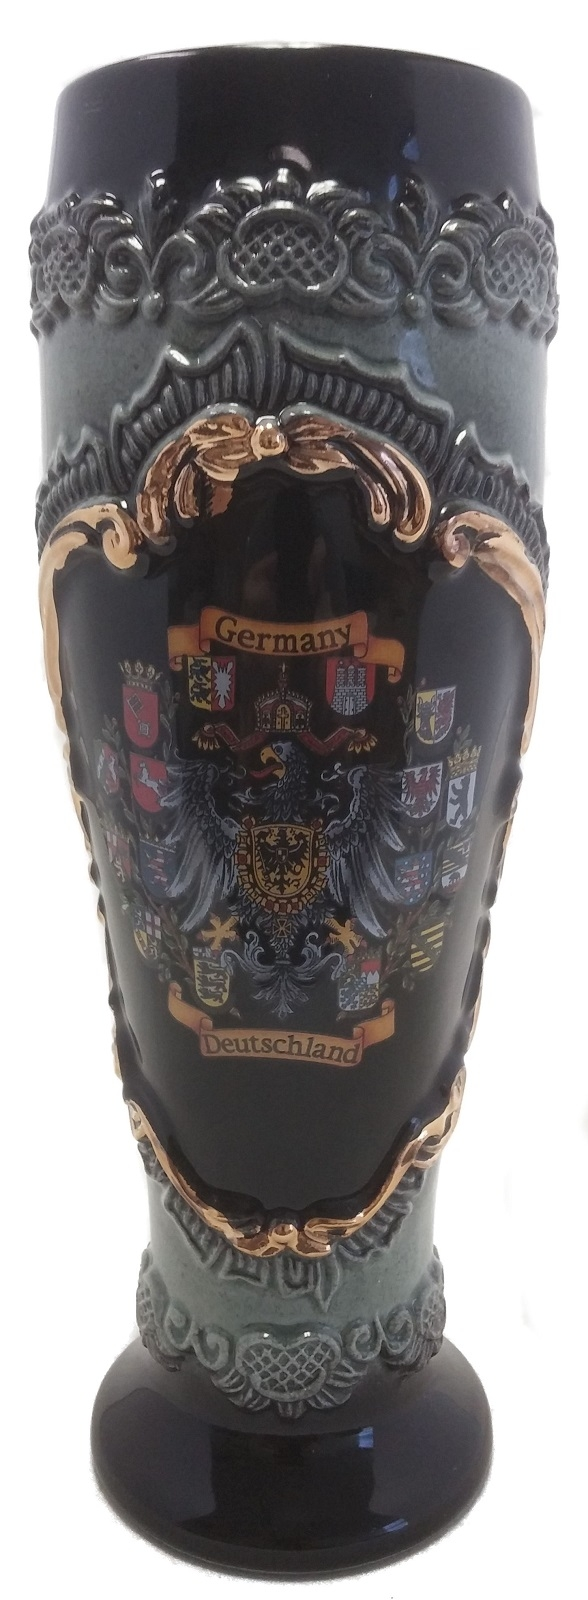 Black Wheat Beer Mug with Gold Relief German Beer Stein .5L